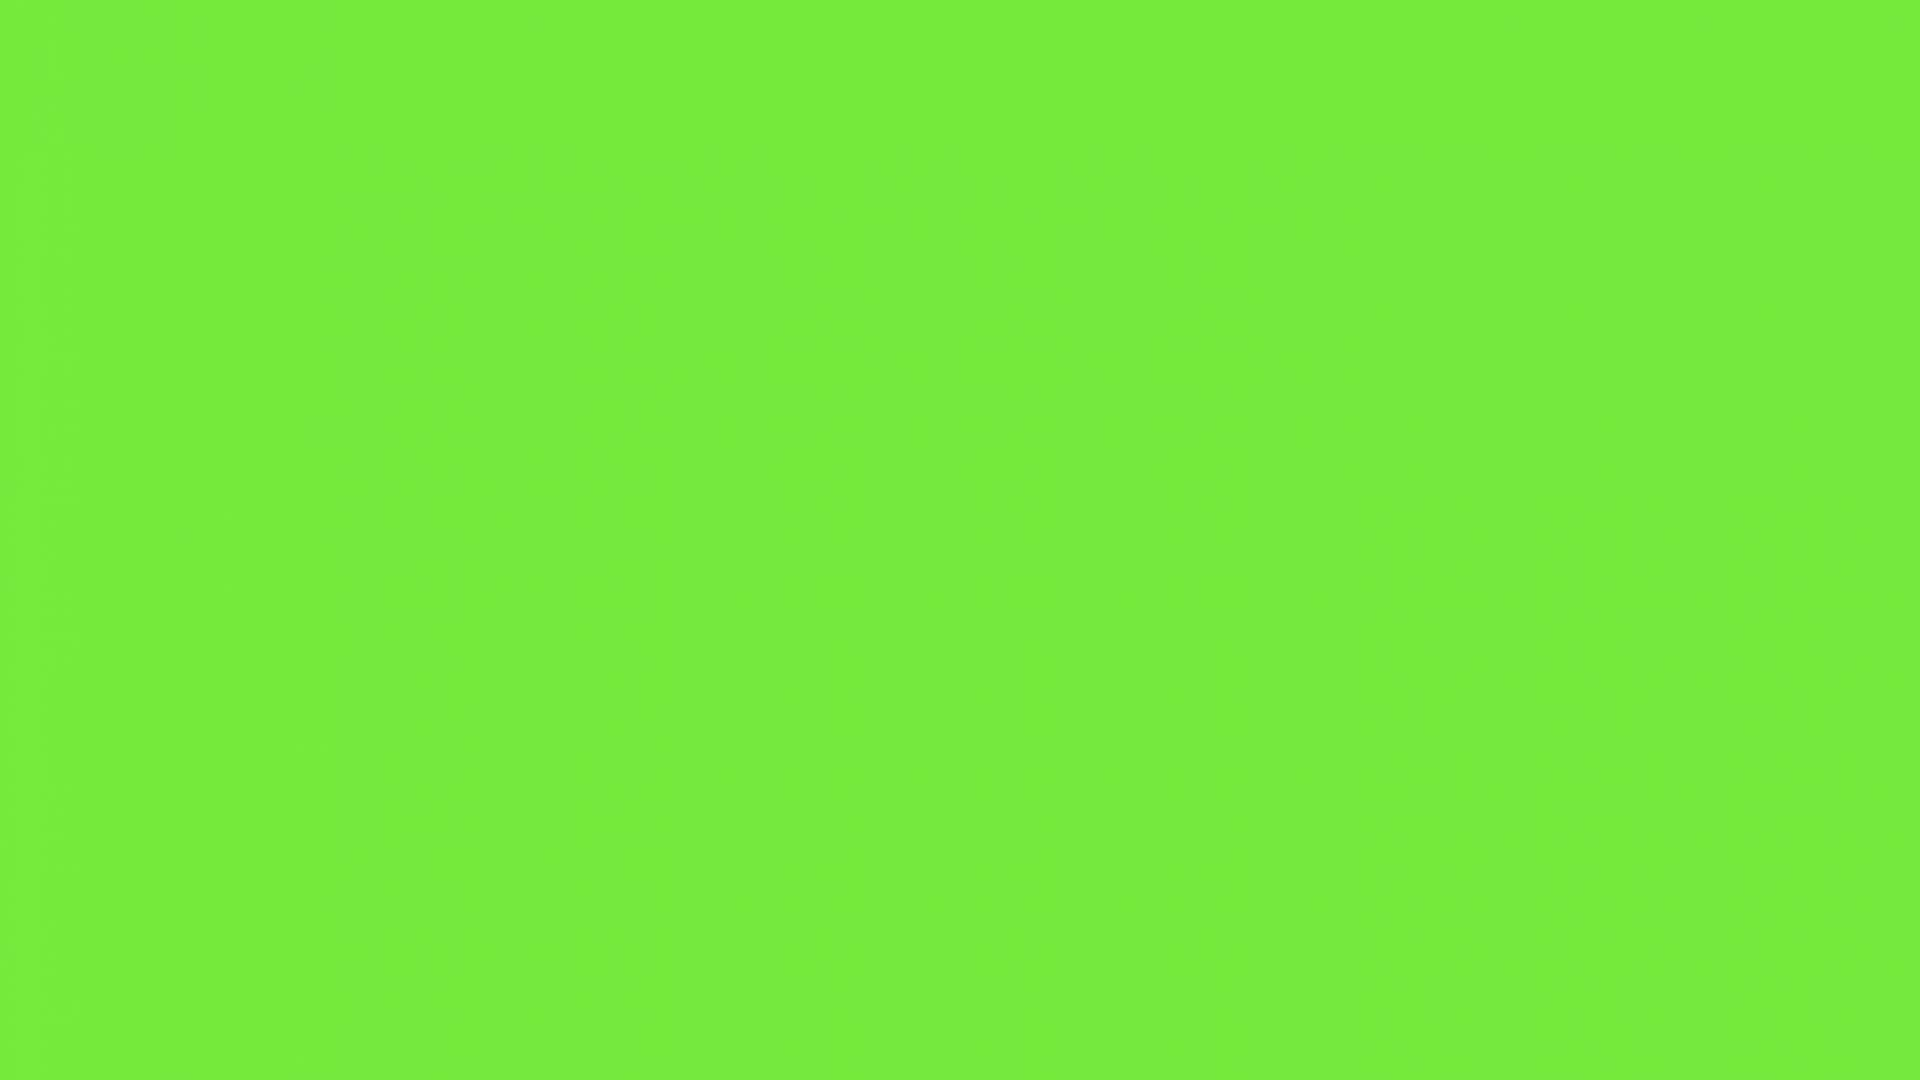 1920x1080 lime green wallpaper 935 | Hd ...